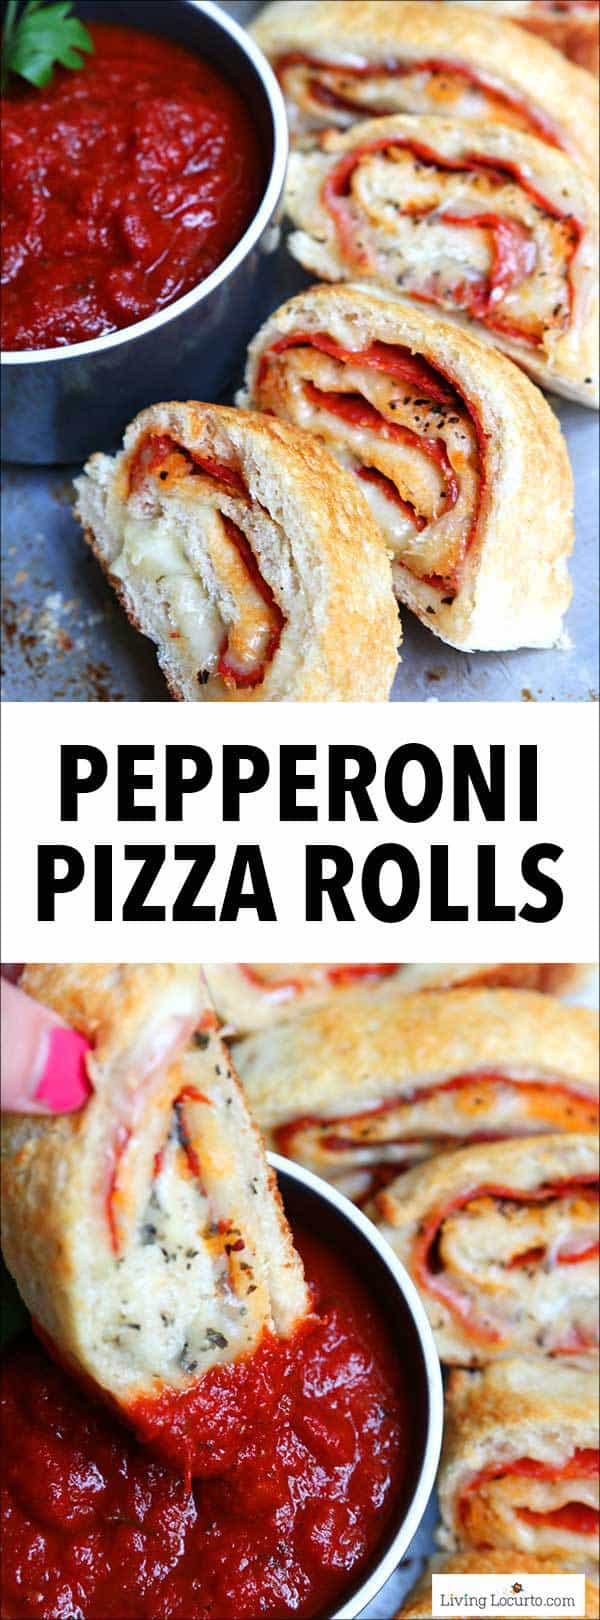 Pepperoni Pizza Rolls with pizza dough filled with pepperoni, mozzarella cheese, Italian spices! Dip in marinara sauce for an easy dinner, party food or kids snack! Kids love this recipe.